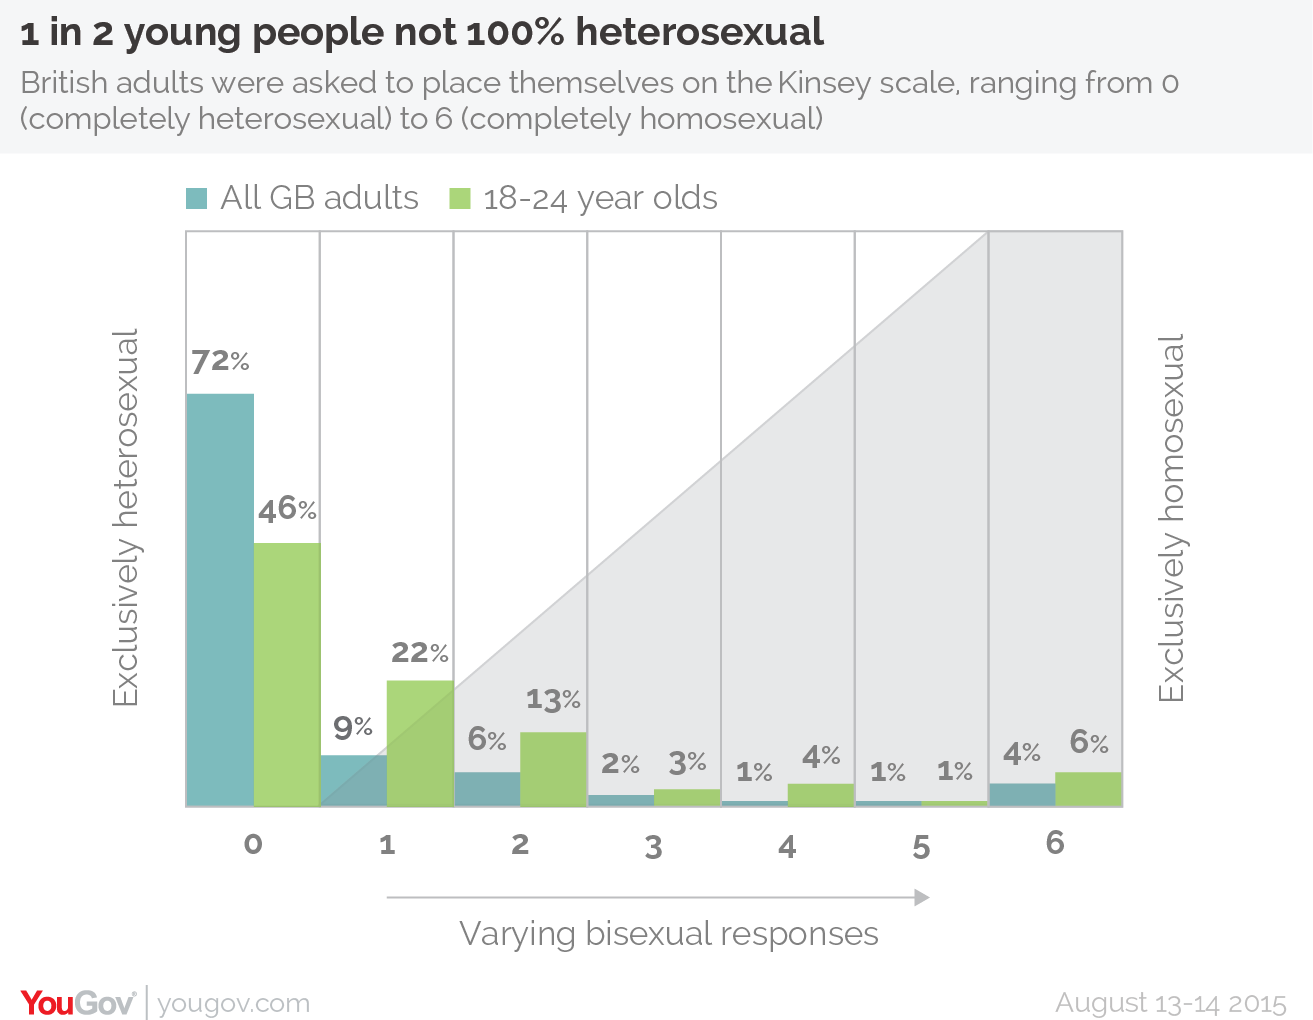 UNILAD yougov gay 12 Half Of Young People In The UK Are Not 100% Heterosexual